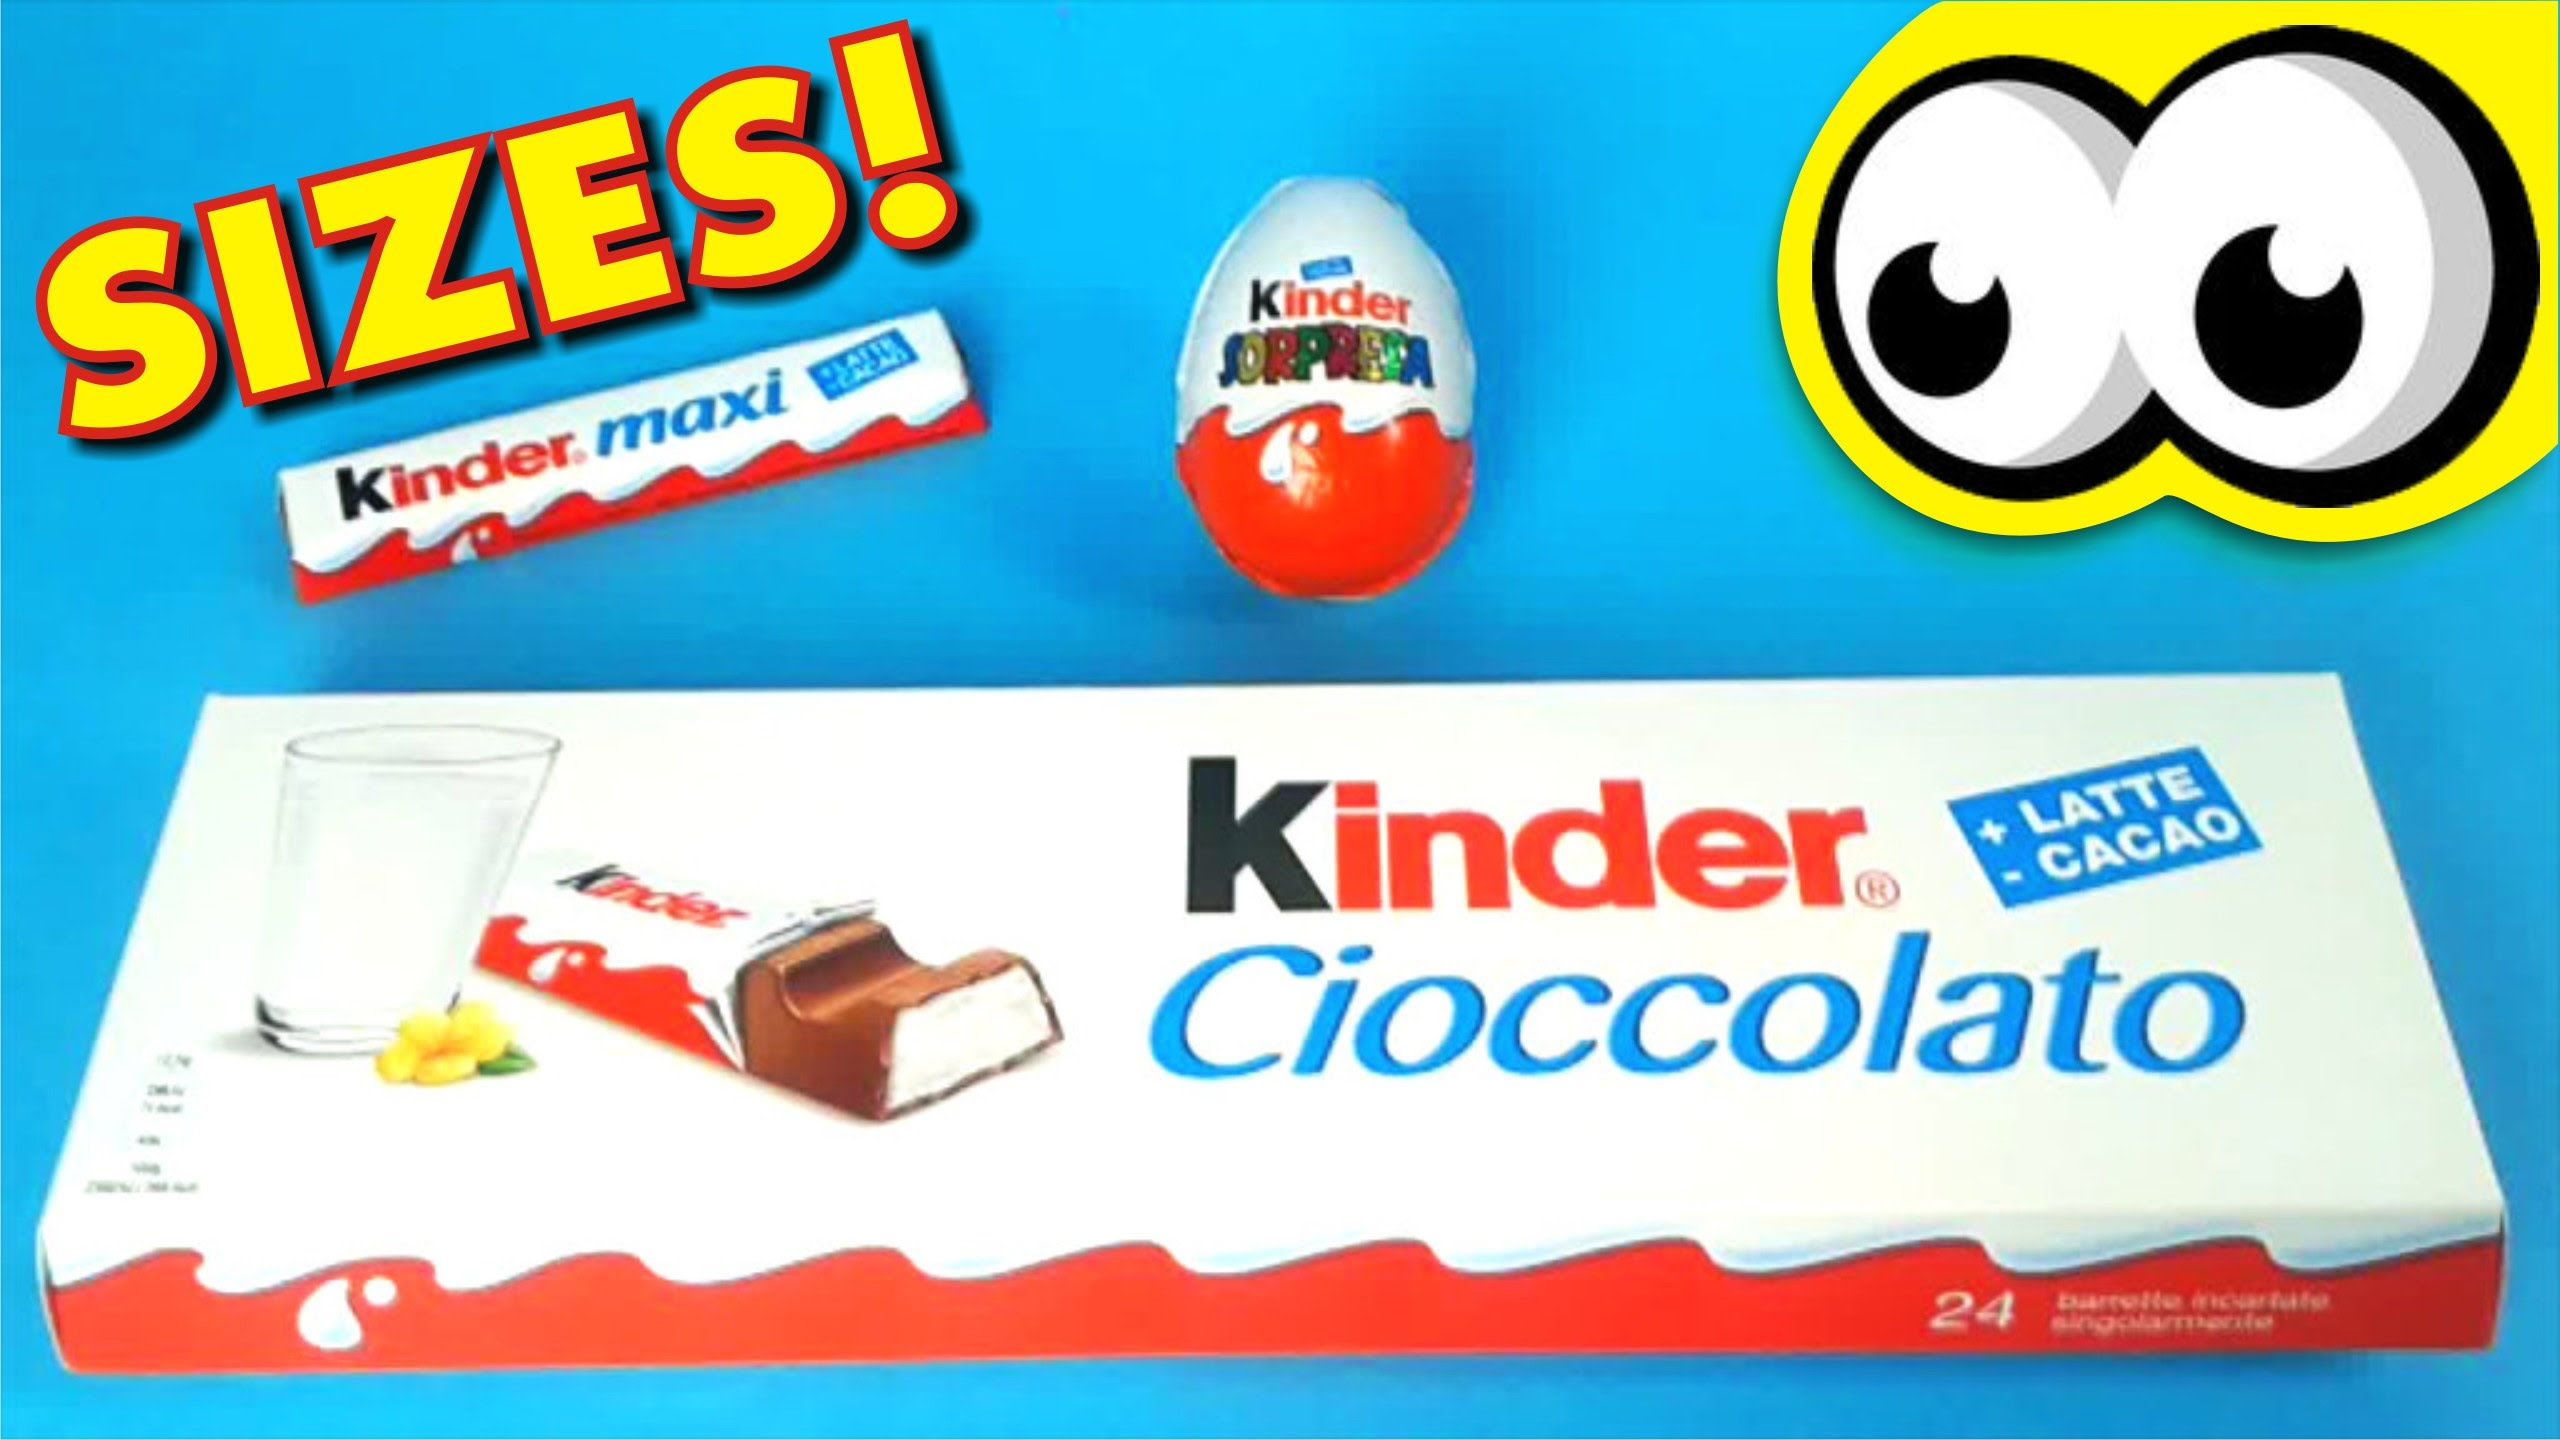 Kinder Maxi Big Pack Giant Kinder Chocolate Learn Sizes Big Bigger Biggest With